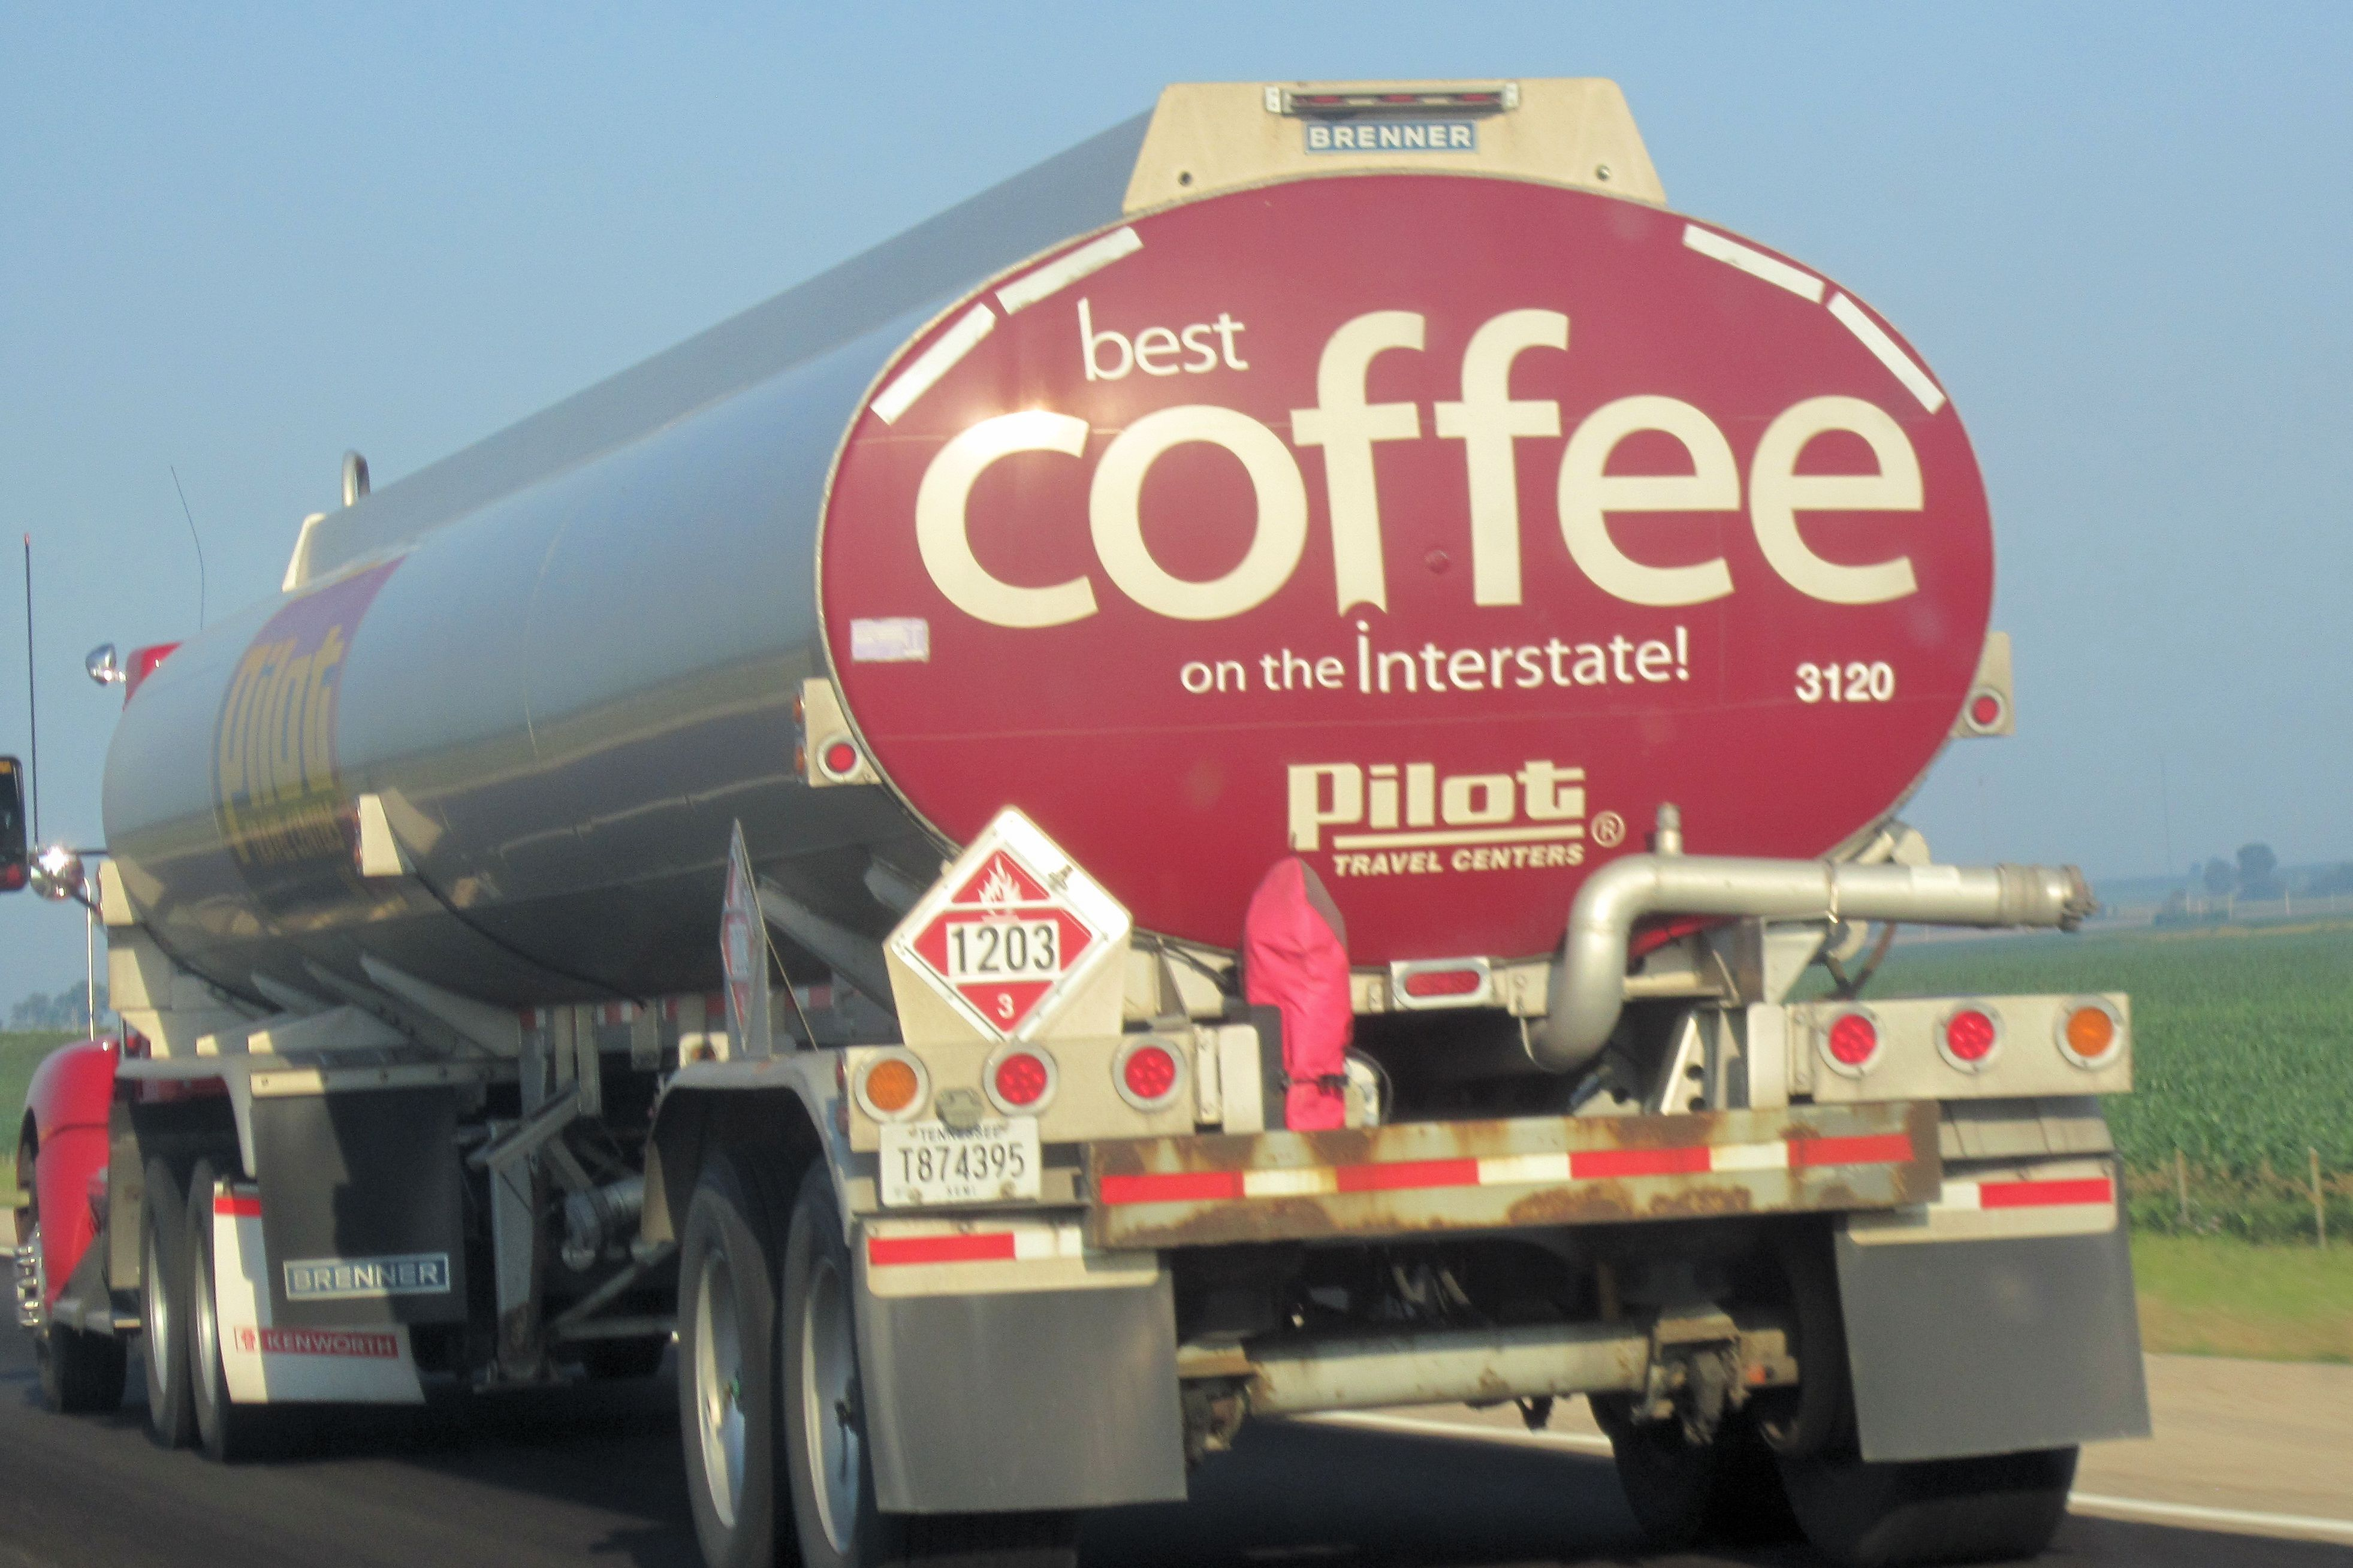 Tanker truck on the highway with a best coffee on the